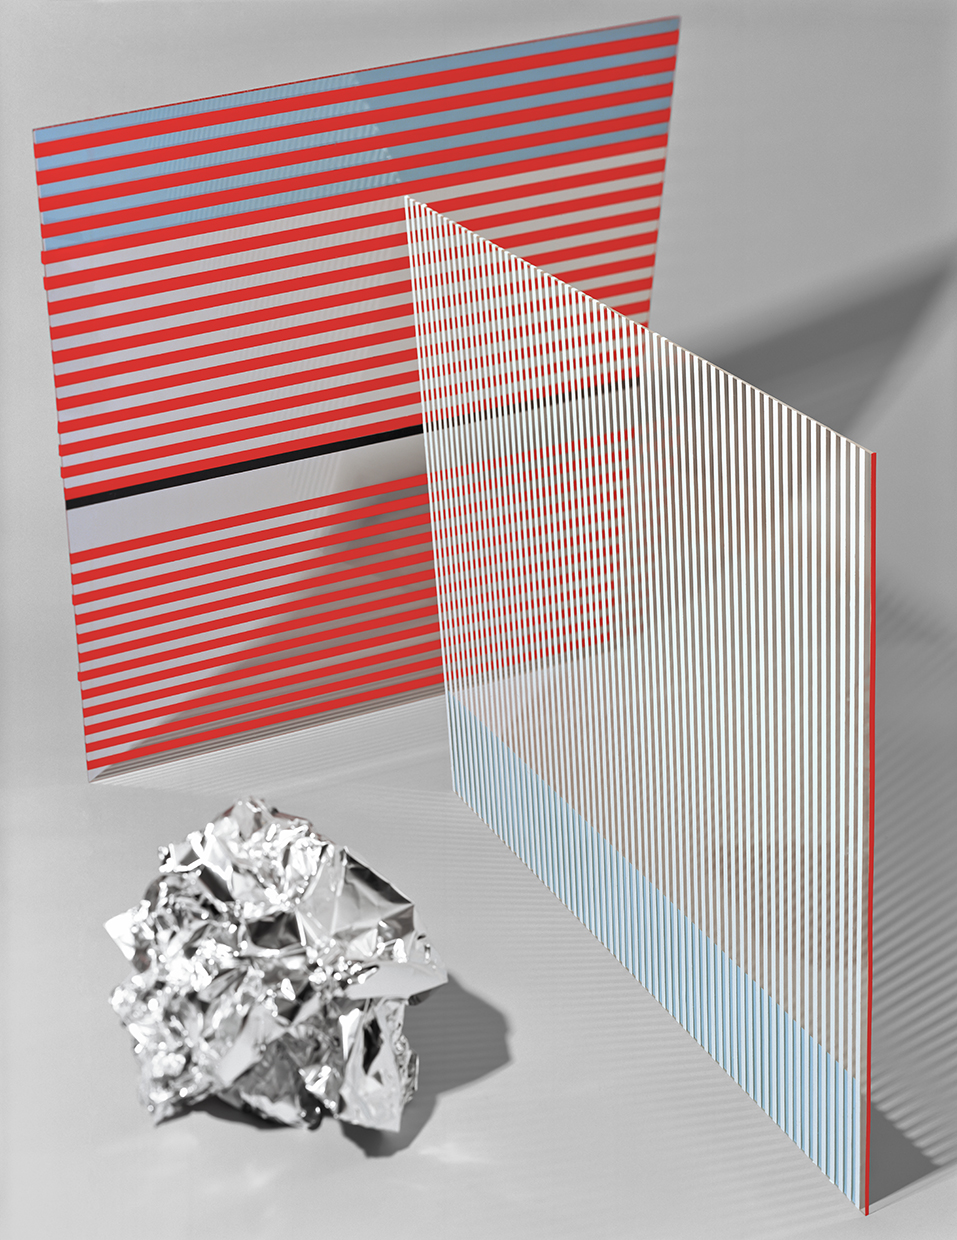 untitled  , 2011  50 x 39  inches  archival pigment print © Brent Wahl